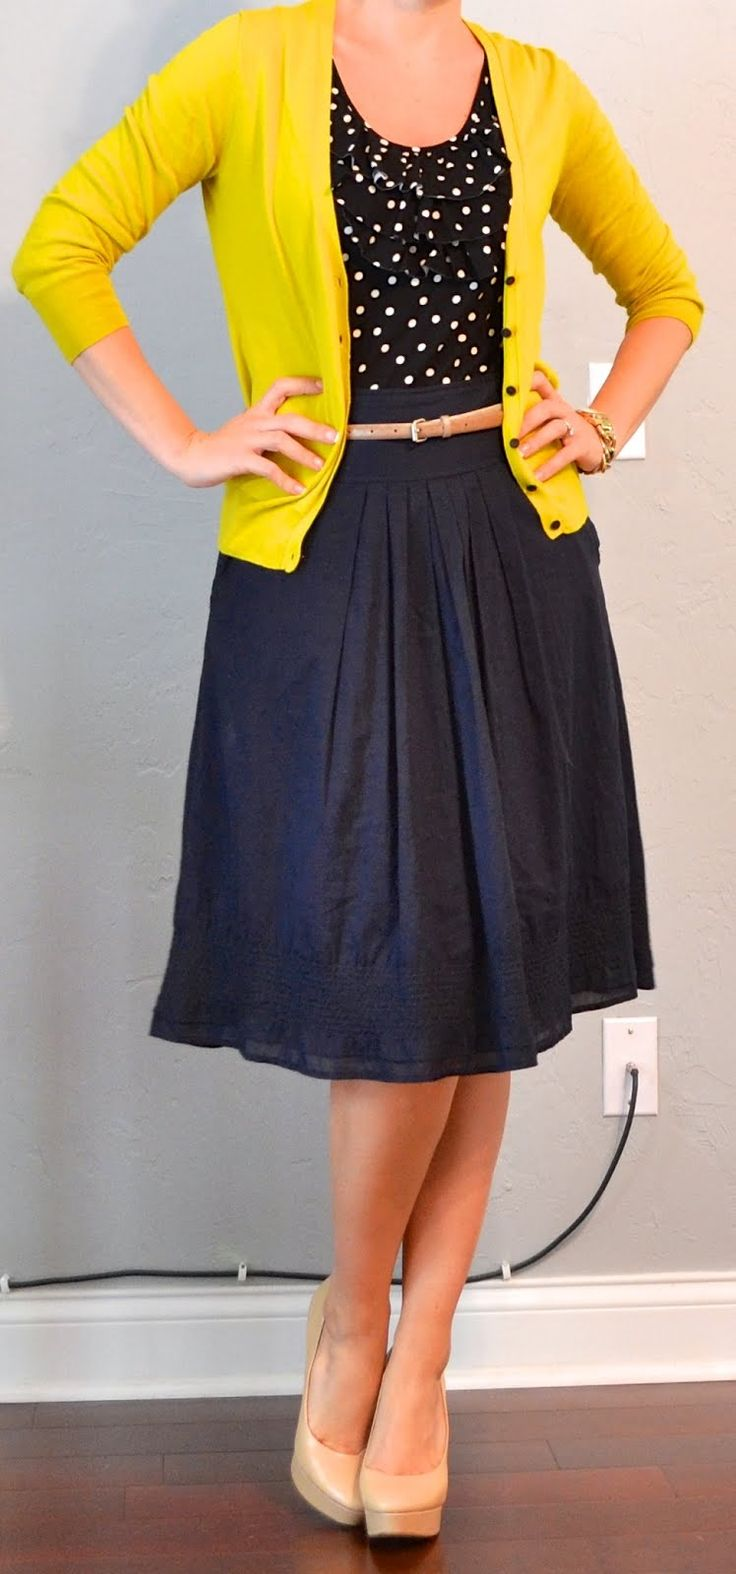 yellow cardigan, black polka dot blouse, navy skirt, nude shoes, nude belt